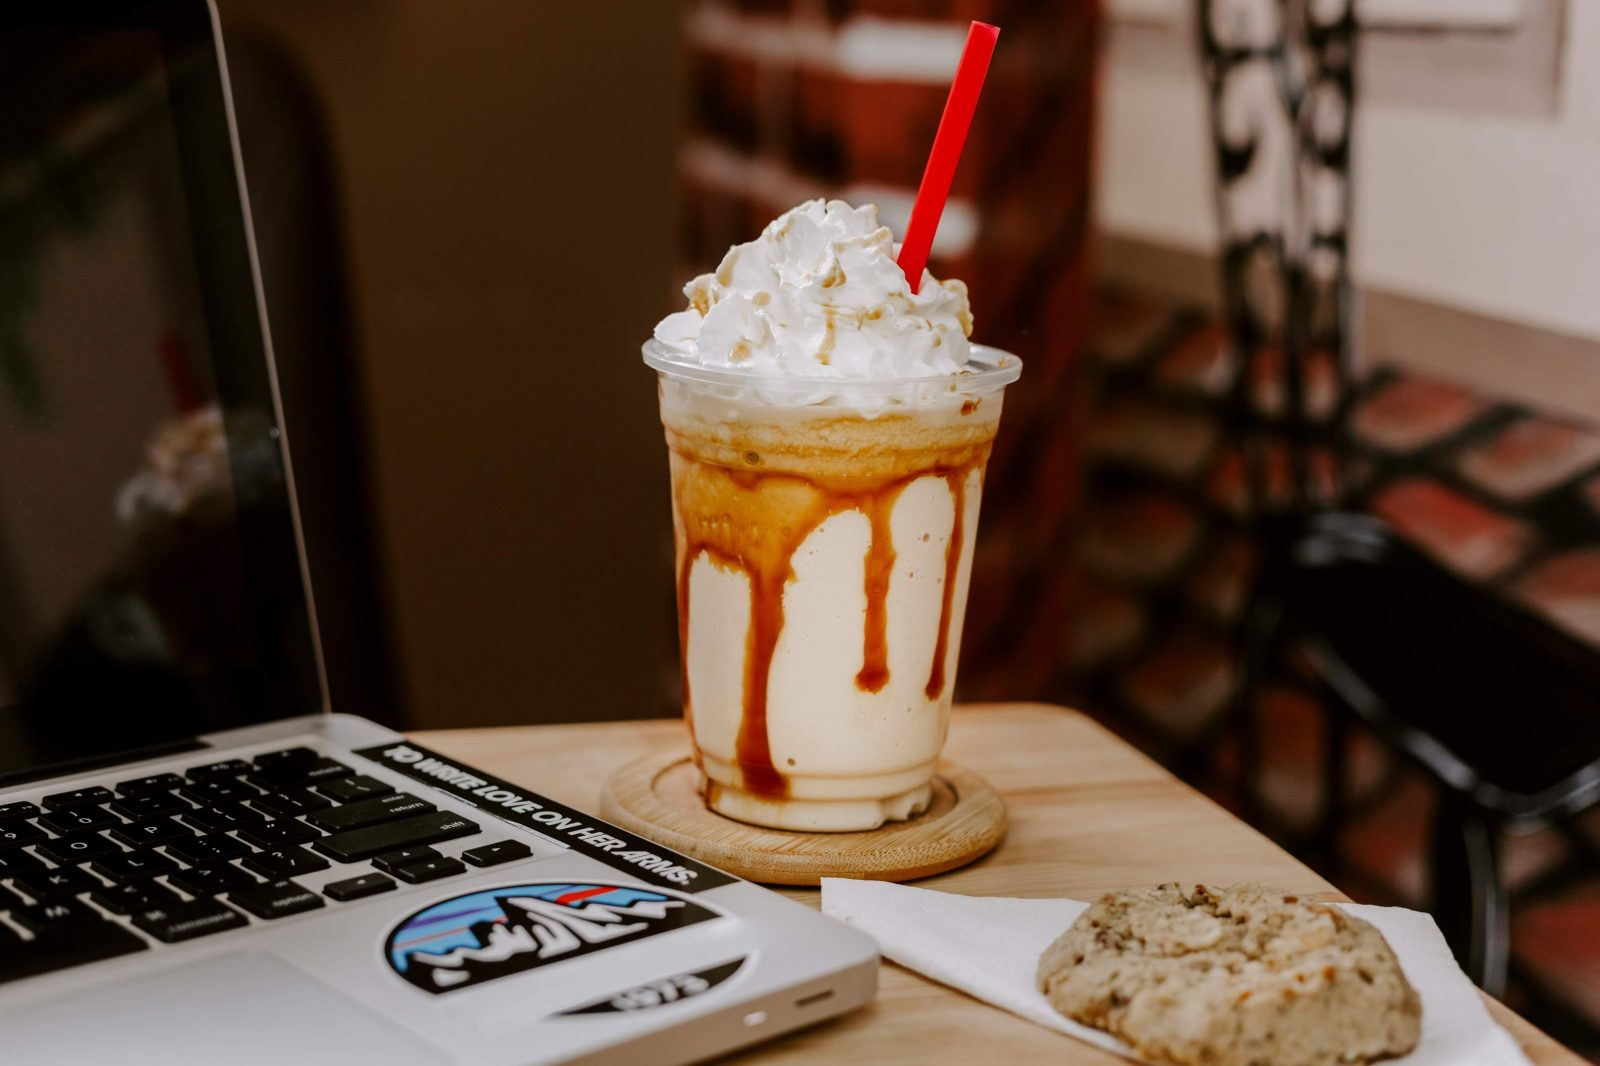 Frozen White Chocolate Mocha at Bradley's Gourmet Coffees and More in Whitley City, Kentucky